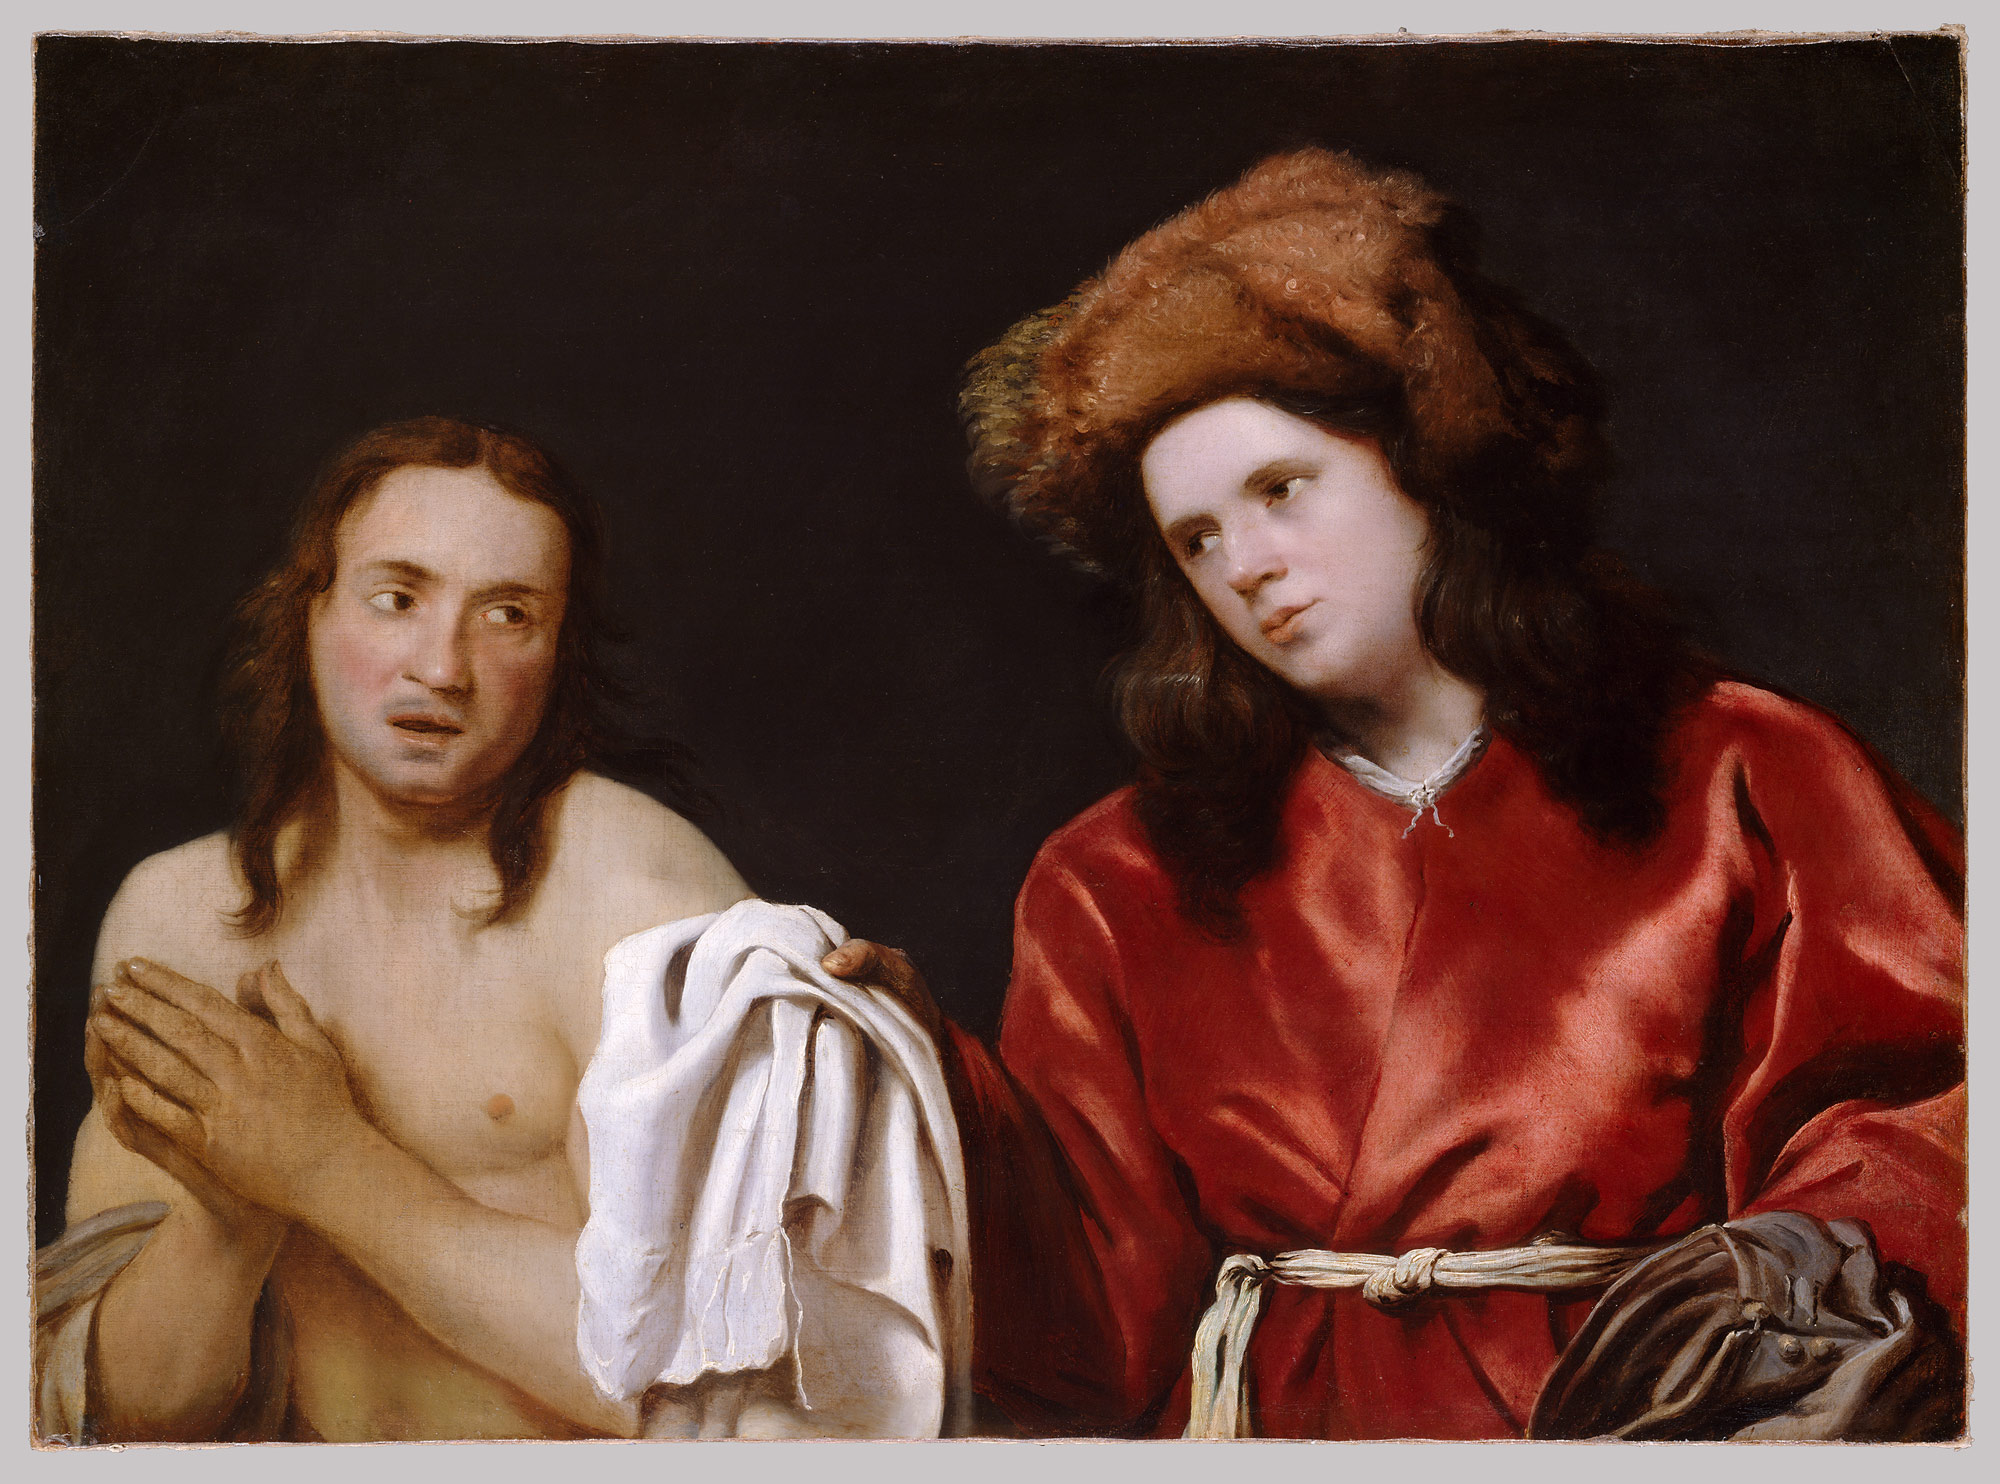 SWEERTS Michiel_Clothing the naked_MetMuseum hb_1984.459.1